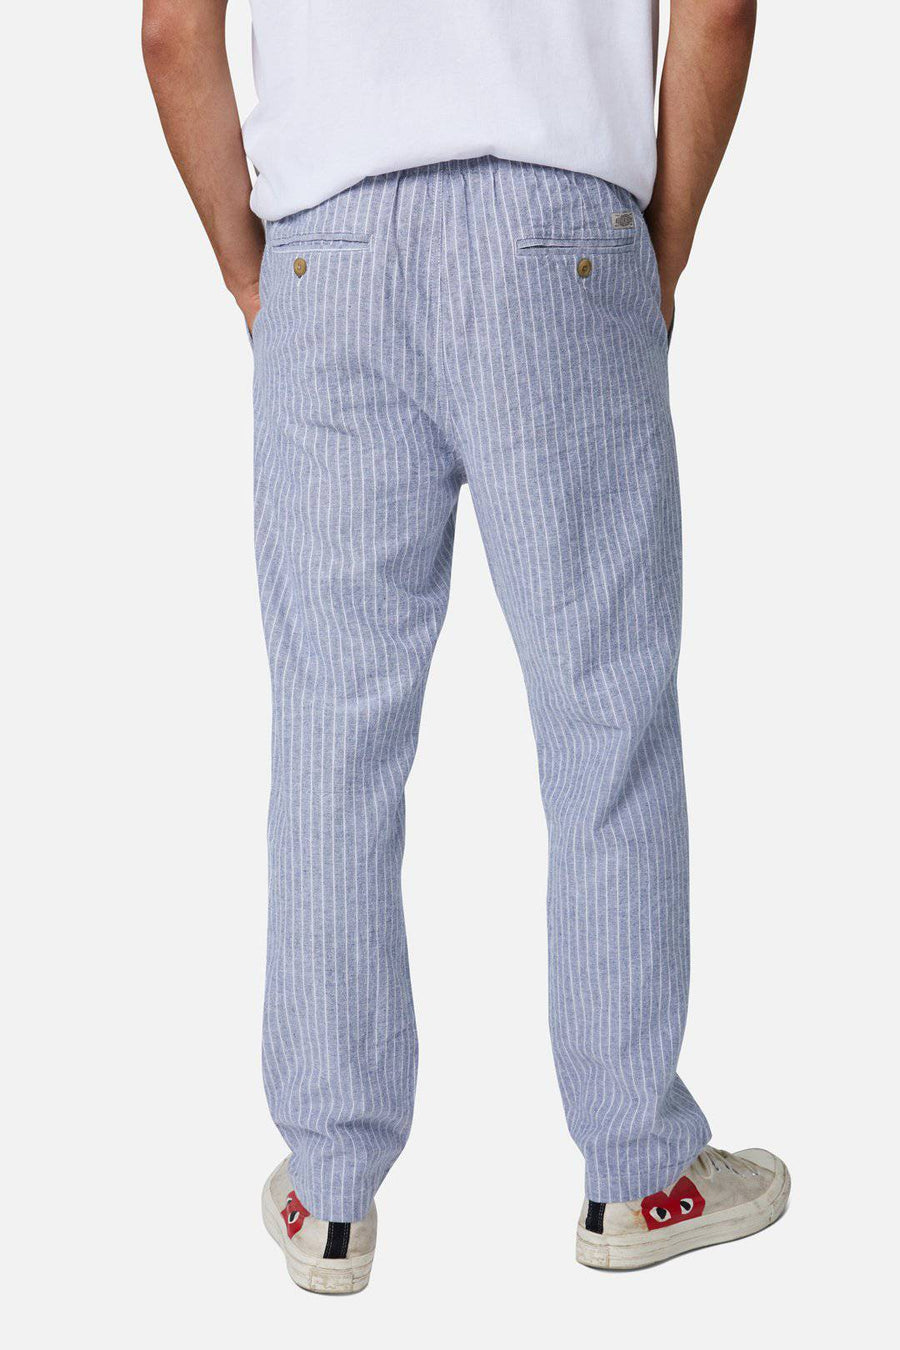 Montesol Linen Pants - South of London